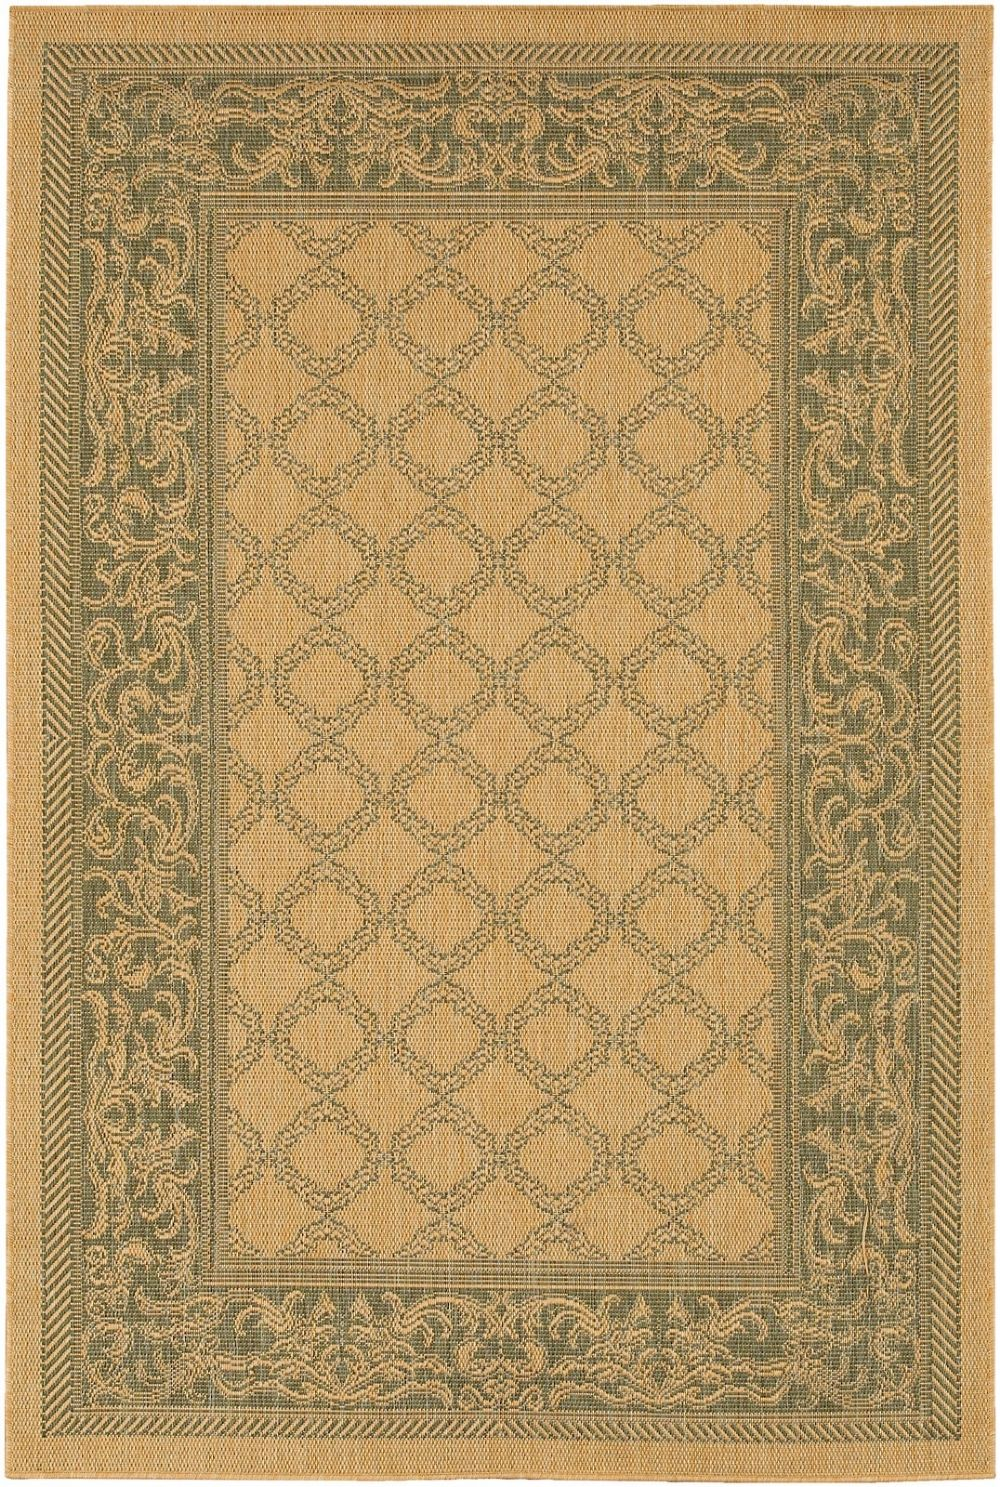 couristan recife indoor/outdoor area rug collection